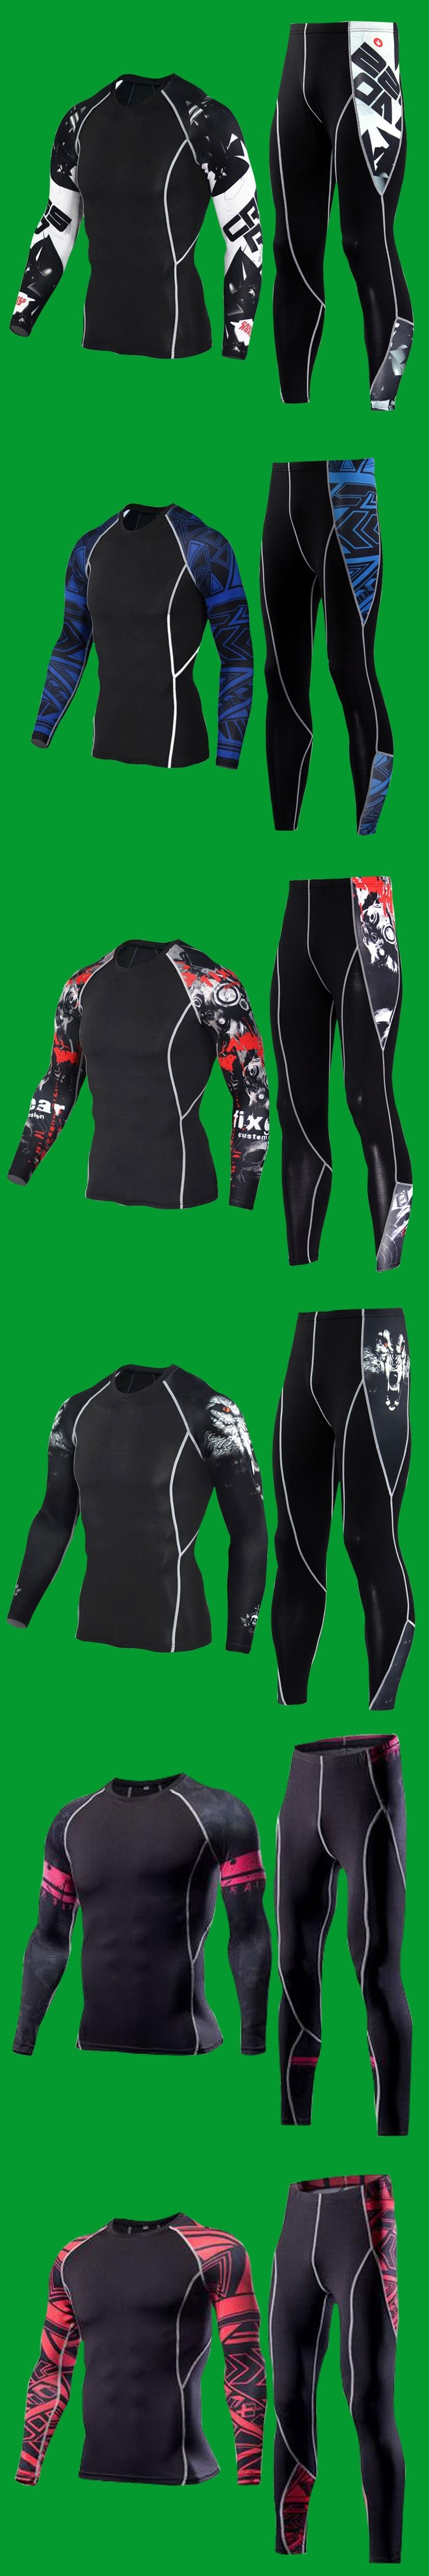 Compression Suits for Men 3D Prints Long Sleeves Rashguard MMA Compression Shirt Full Length Pants for Bodybuilding Crossfit